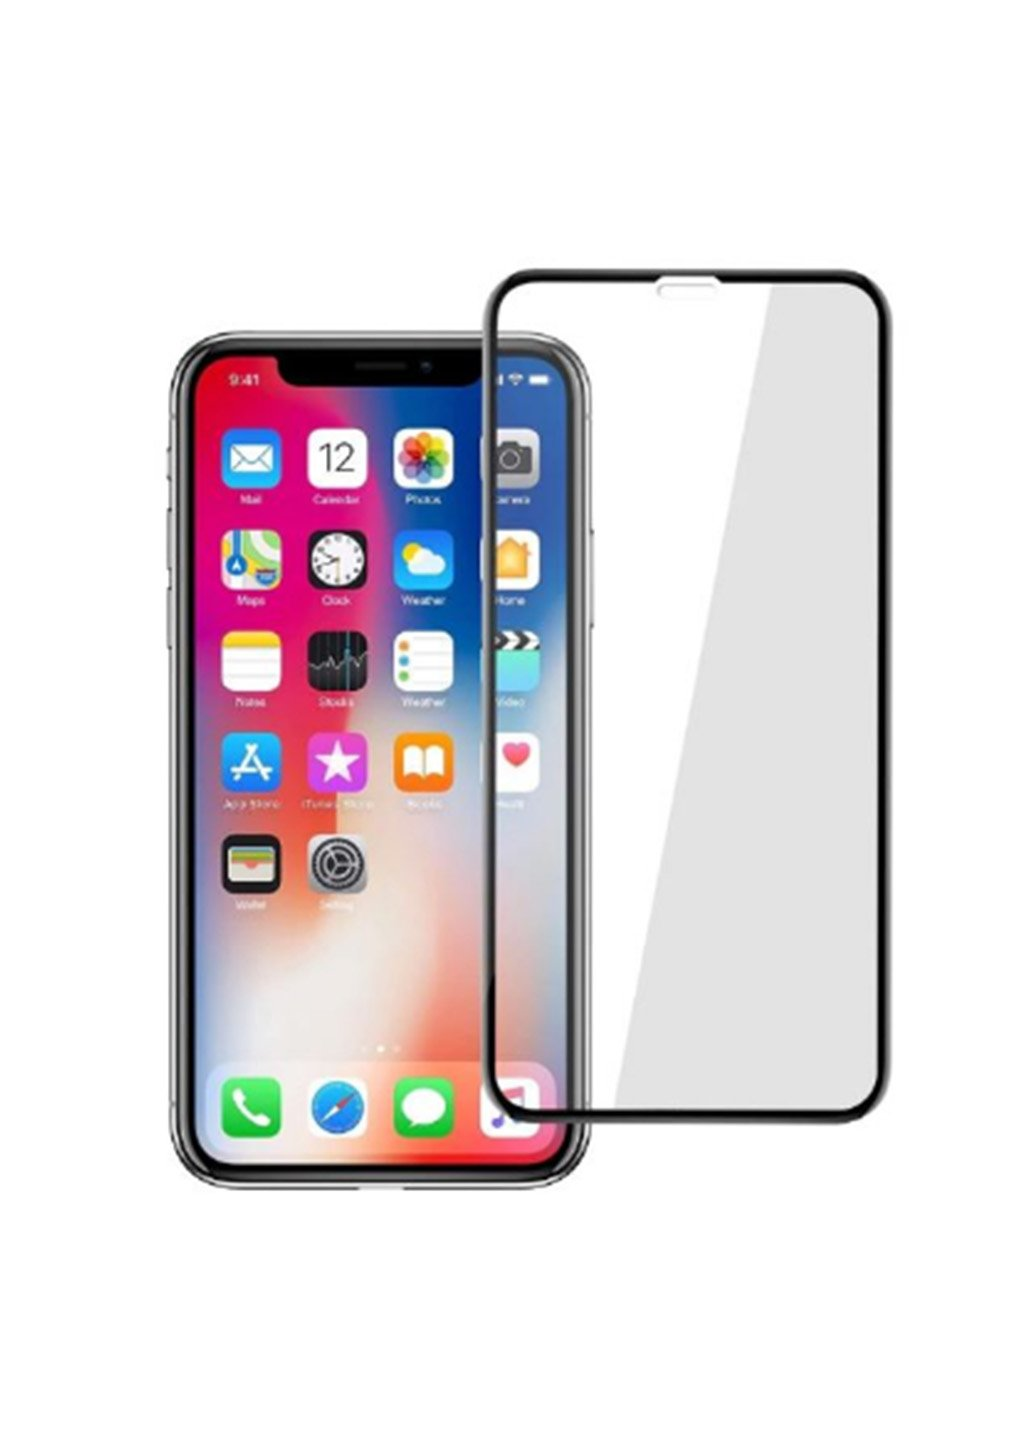 Защитное стекло для телефона Baseus Silk-screen 0.2 mm for iPhone X/Xs/11 Pro(SGAPIPHX-TN01) фото